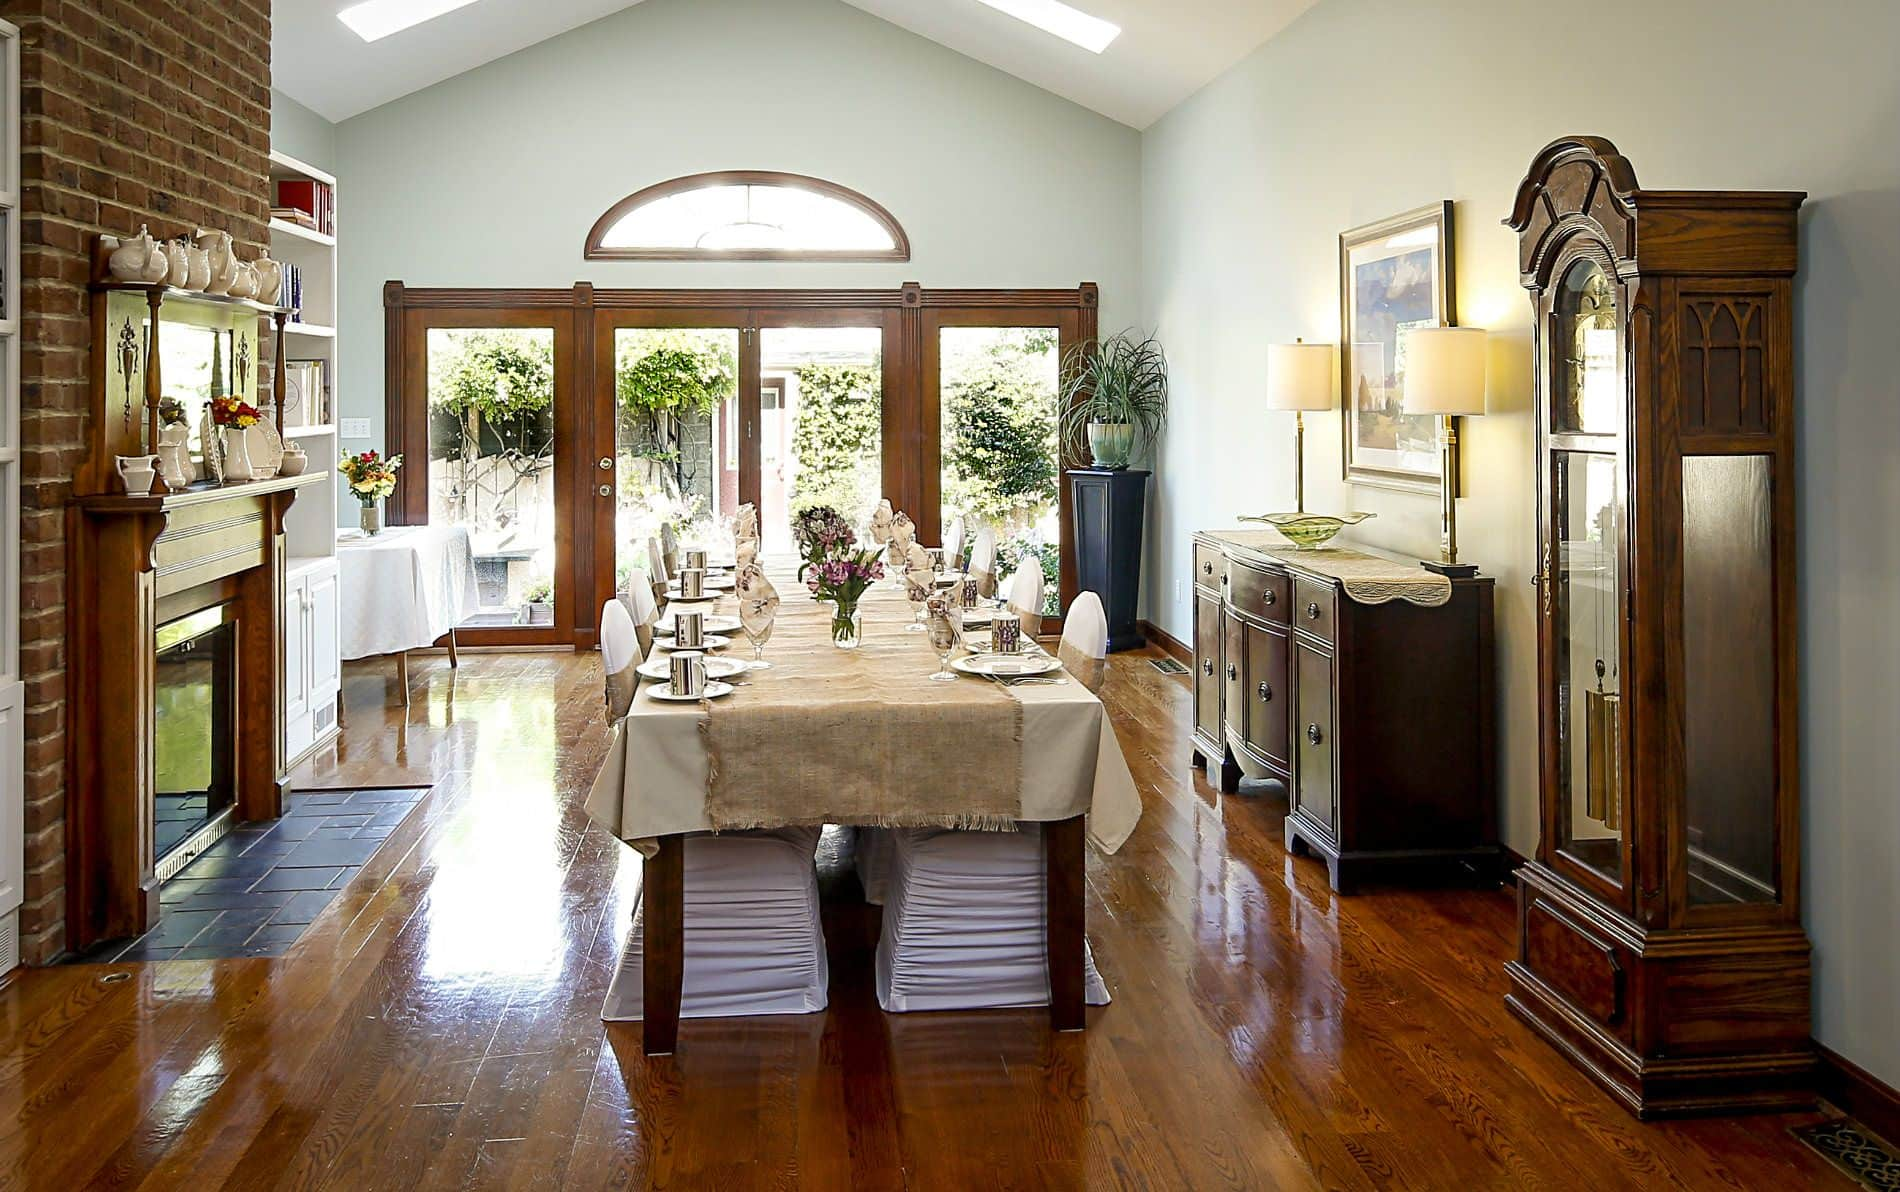 Long dining room with hardwood floors, extra long dining table with tan tablecloth and white covered chairs